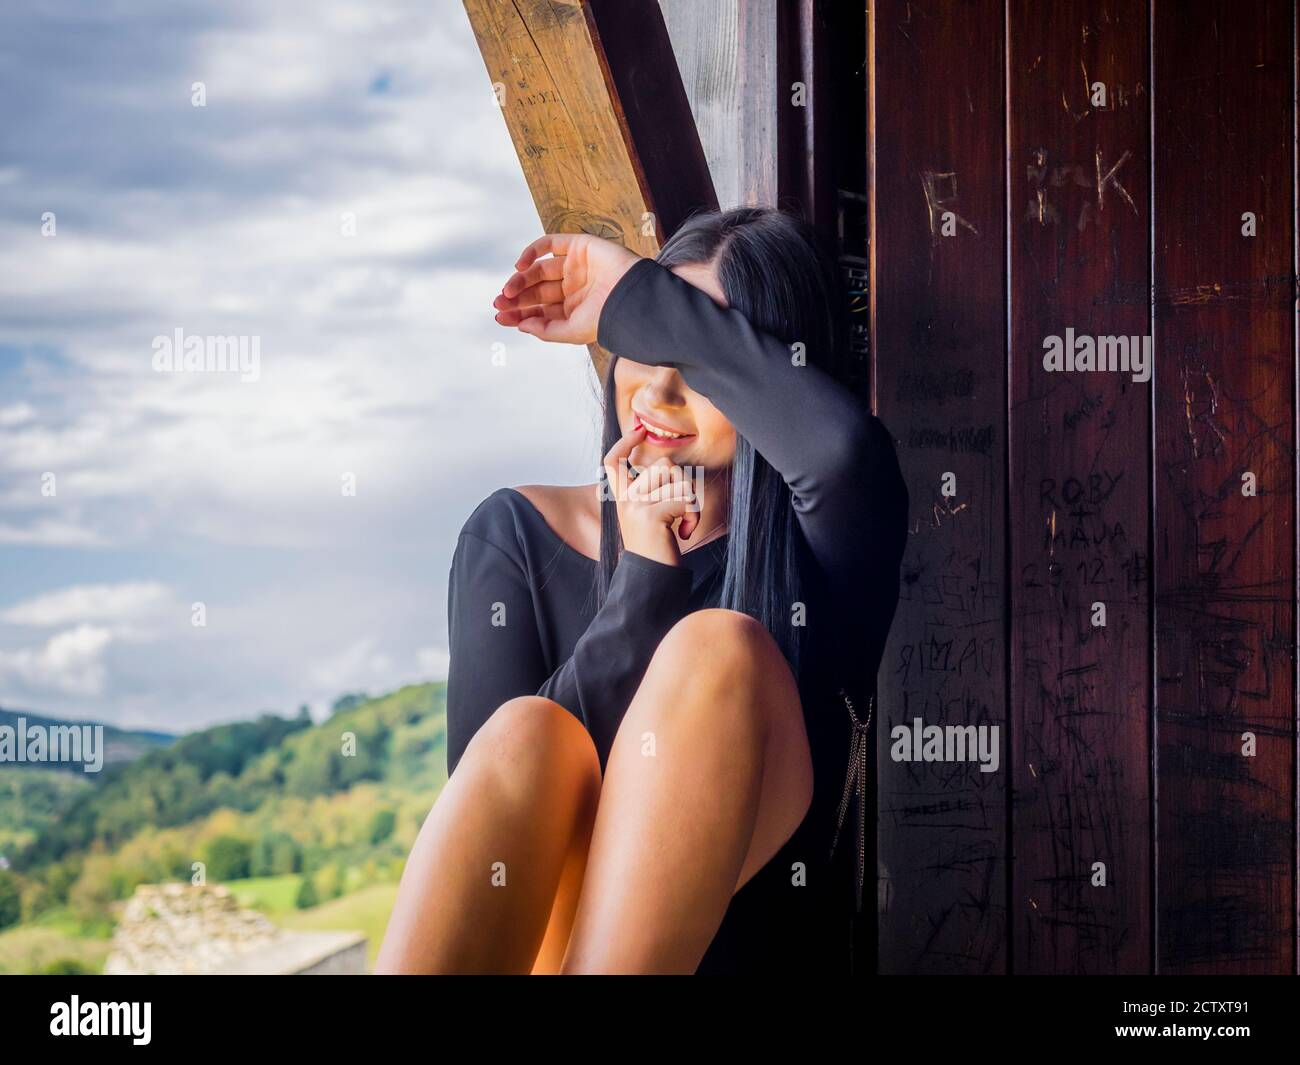 Teengirl sitting enjoying view daydreaming finger in mouth lips smiling happy looking away aside almost hidden identity hand cover covering face eyes Stock Photo